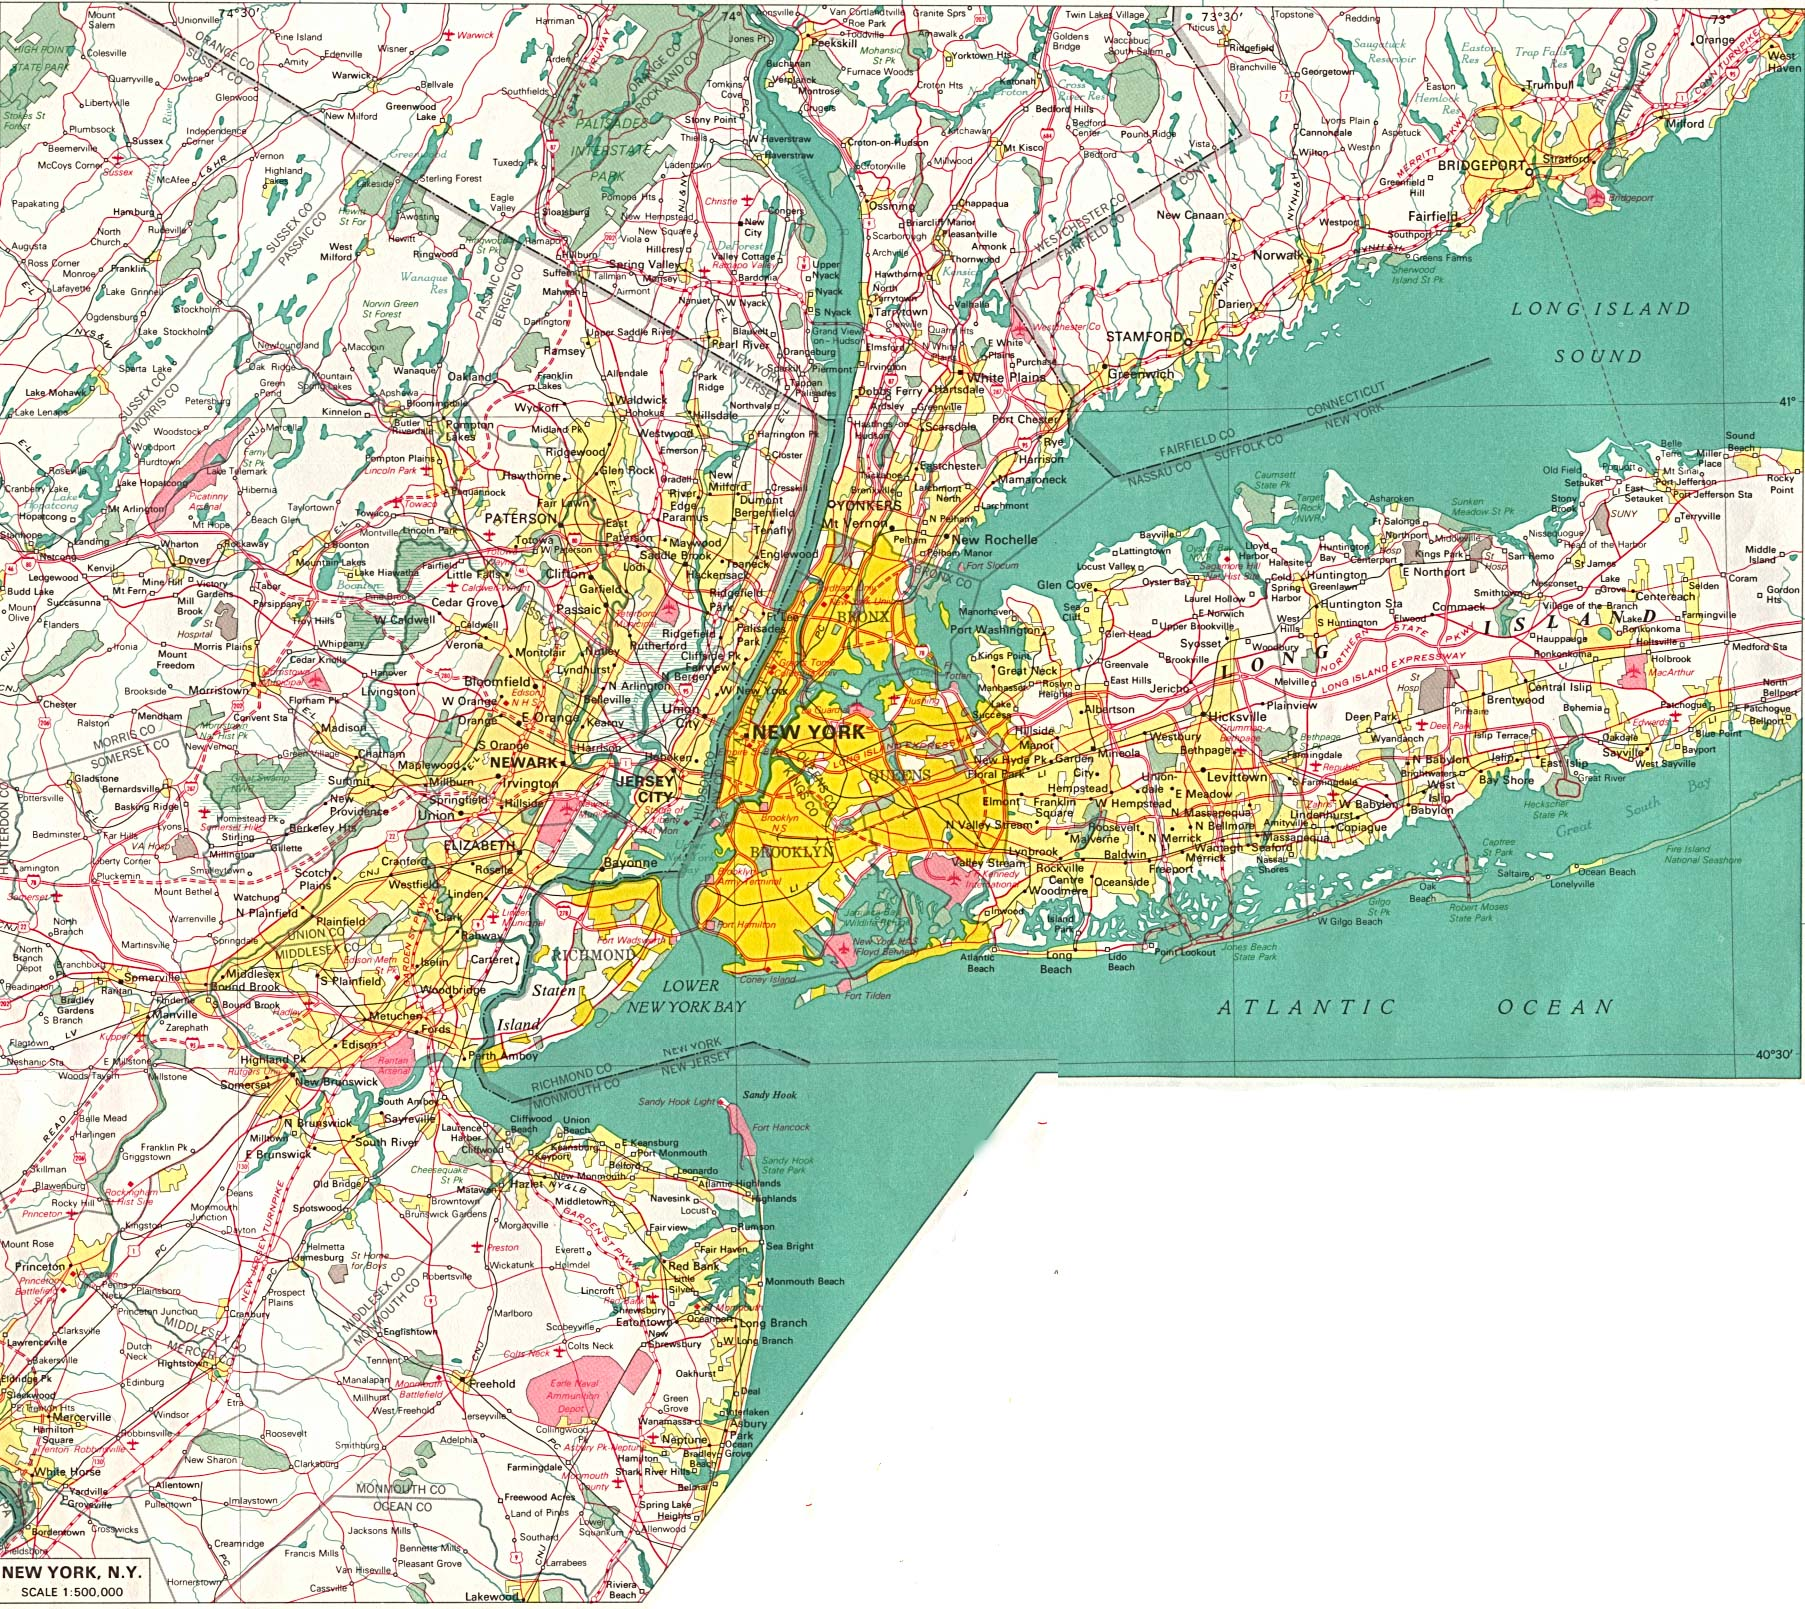 high resolution large map of new york download for print out